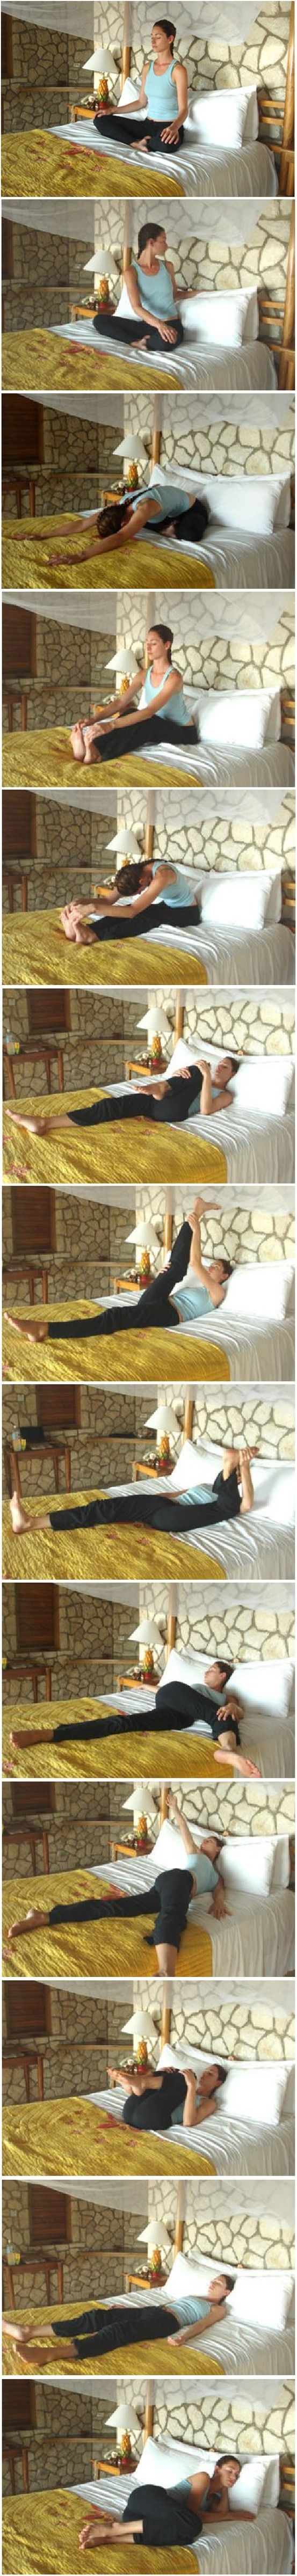 Bed time (or anytime) yoga stretches. Releases tension in lower back, elongating the lower spine.  Pinner said: Tried this tonight. I don't remember the last time I was this relaxed. It feels so good to release tension after a long day.